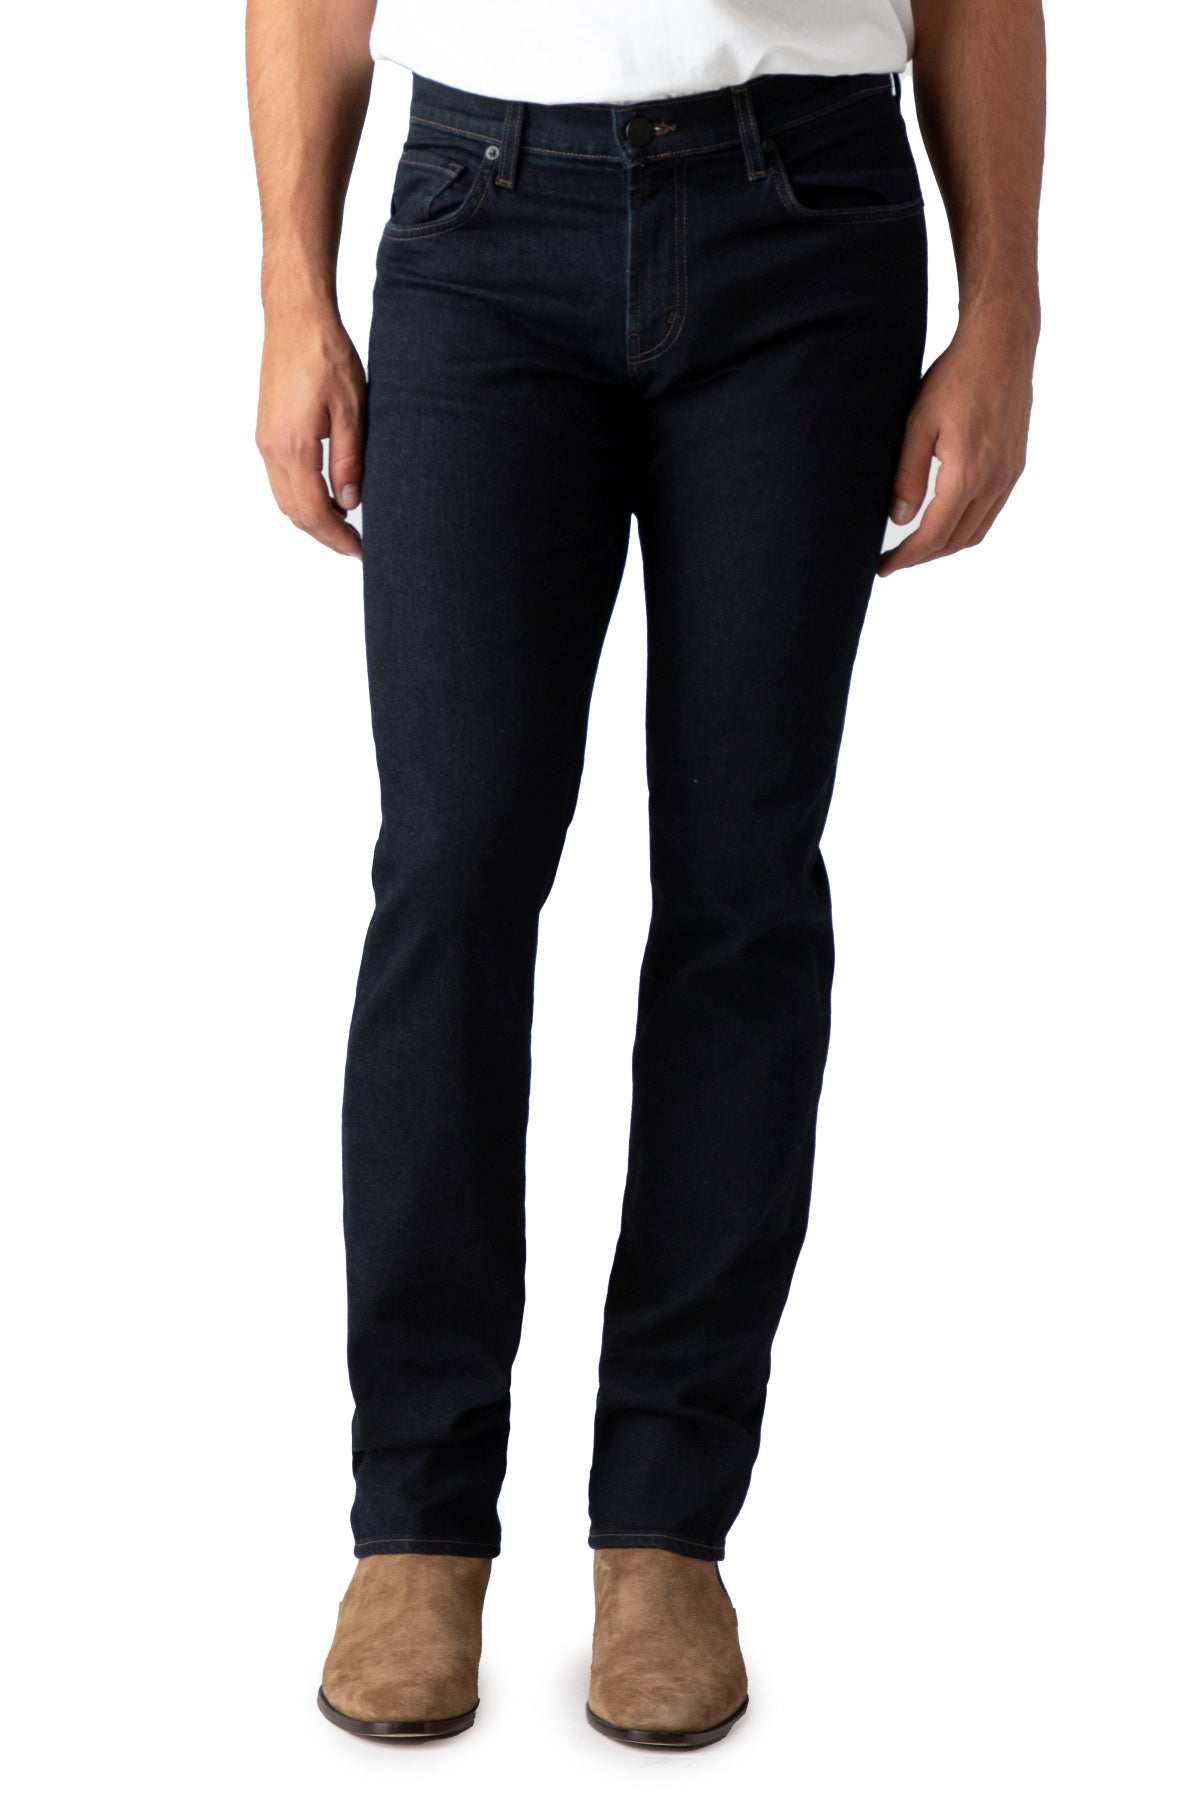 J Brand Tyler Slim Fit Jean In Raja JB000172-J40977